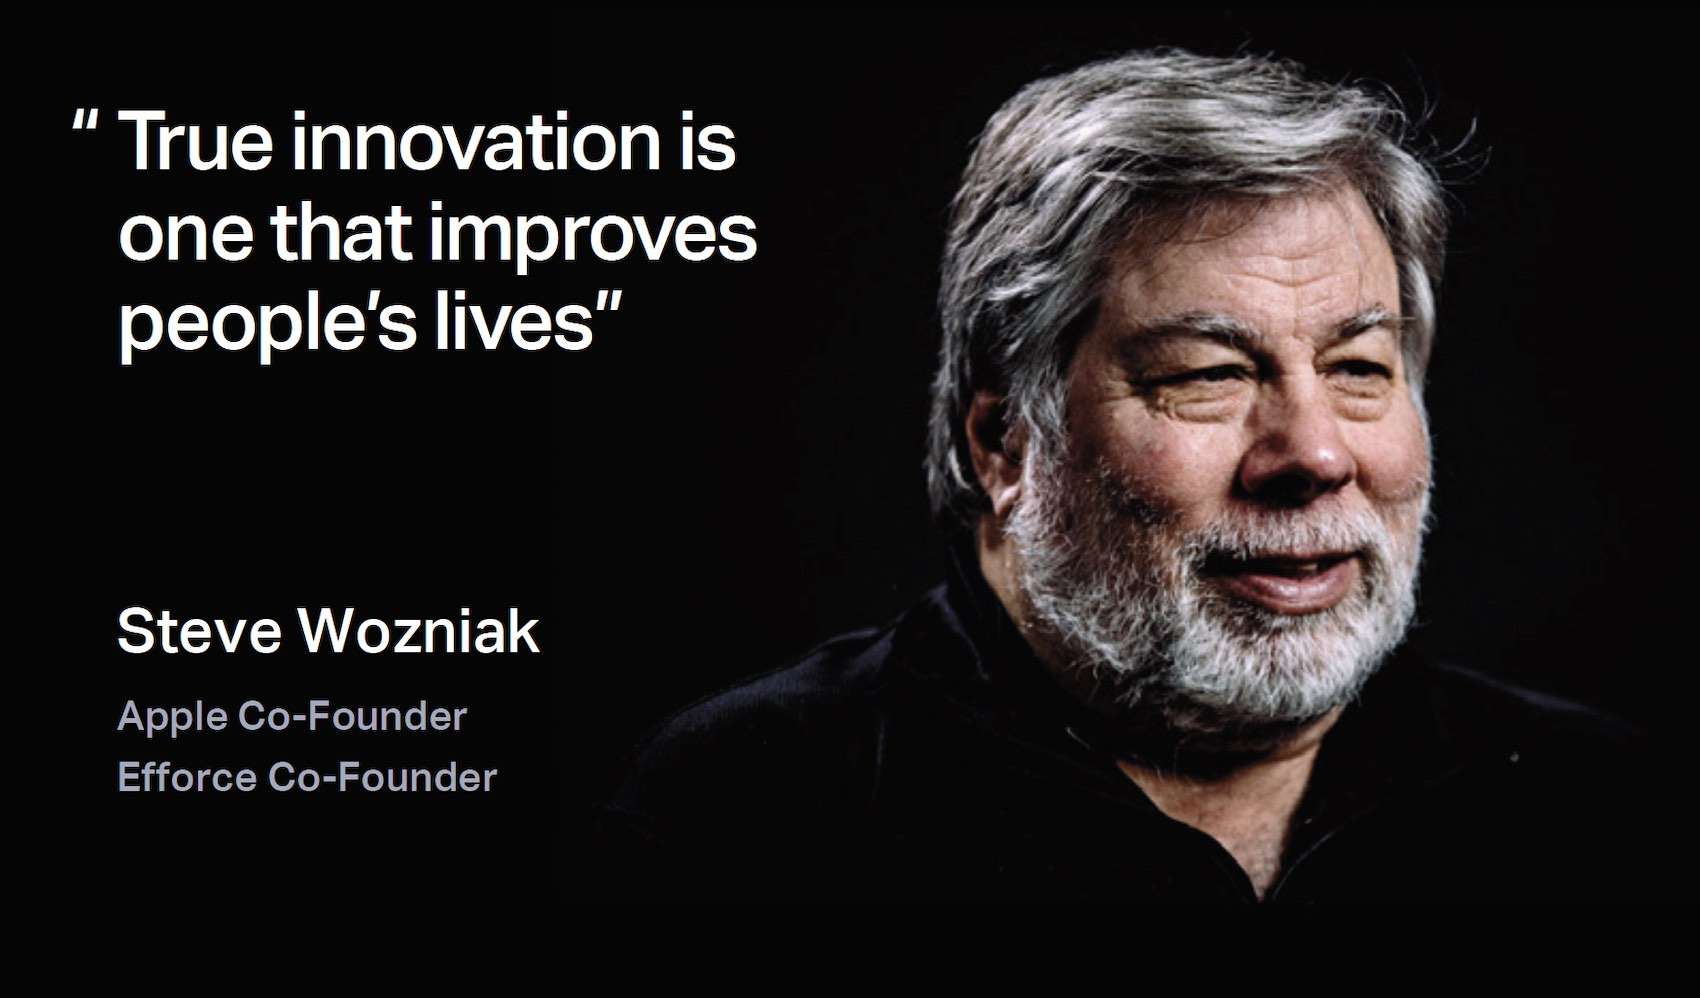 Steve Wozniak Efforce